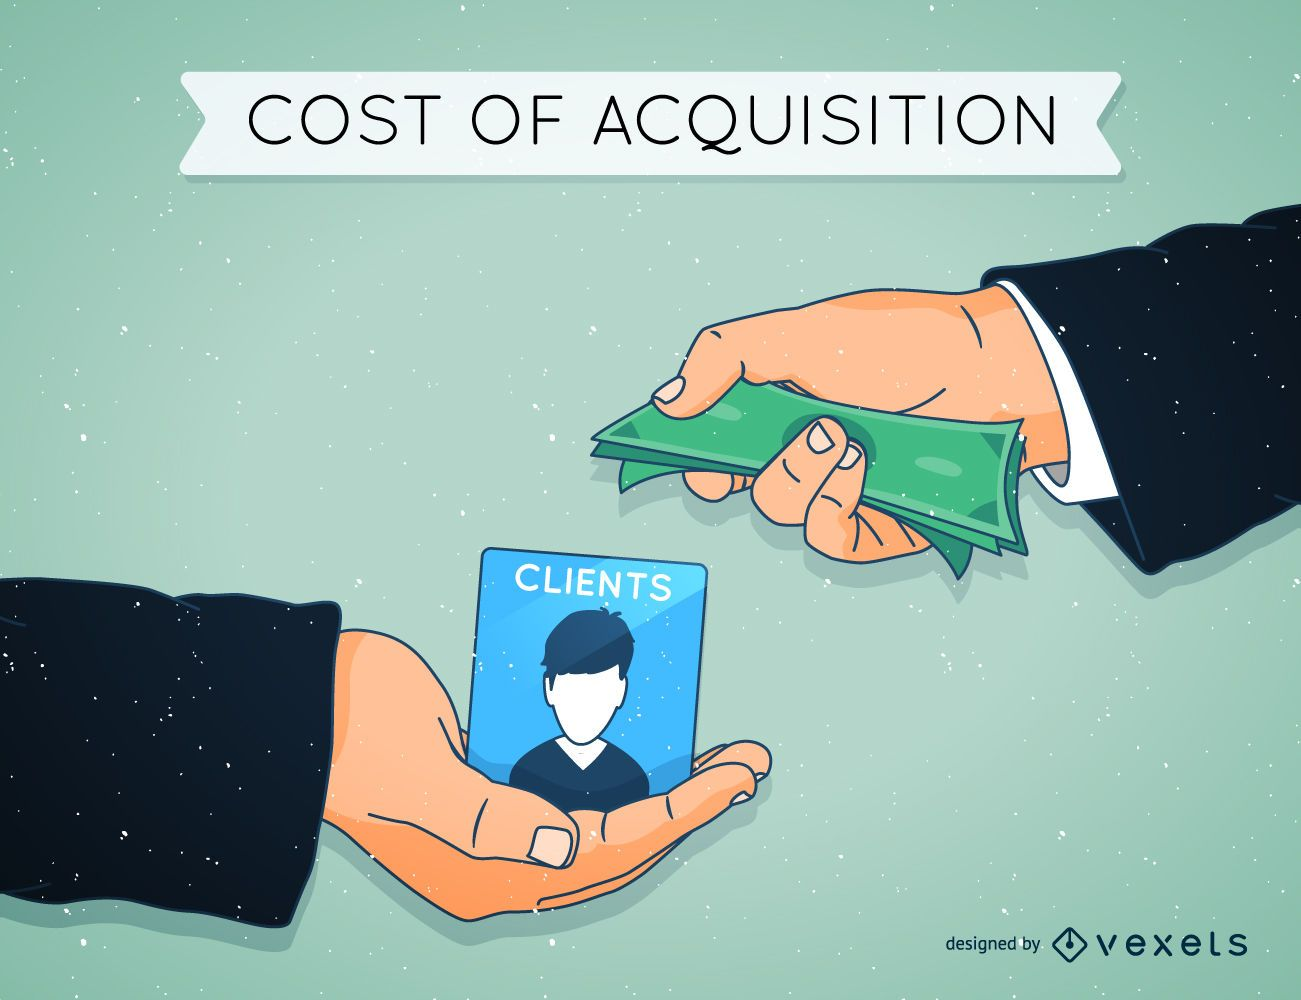 Cost of acquisition concept illustration